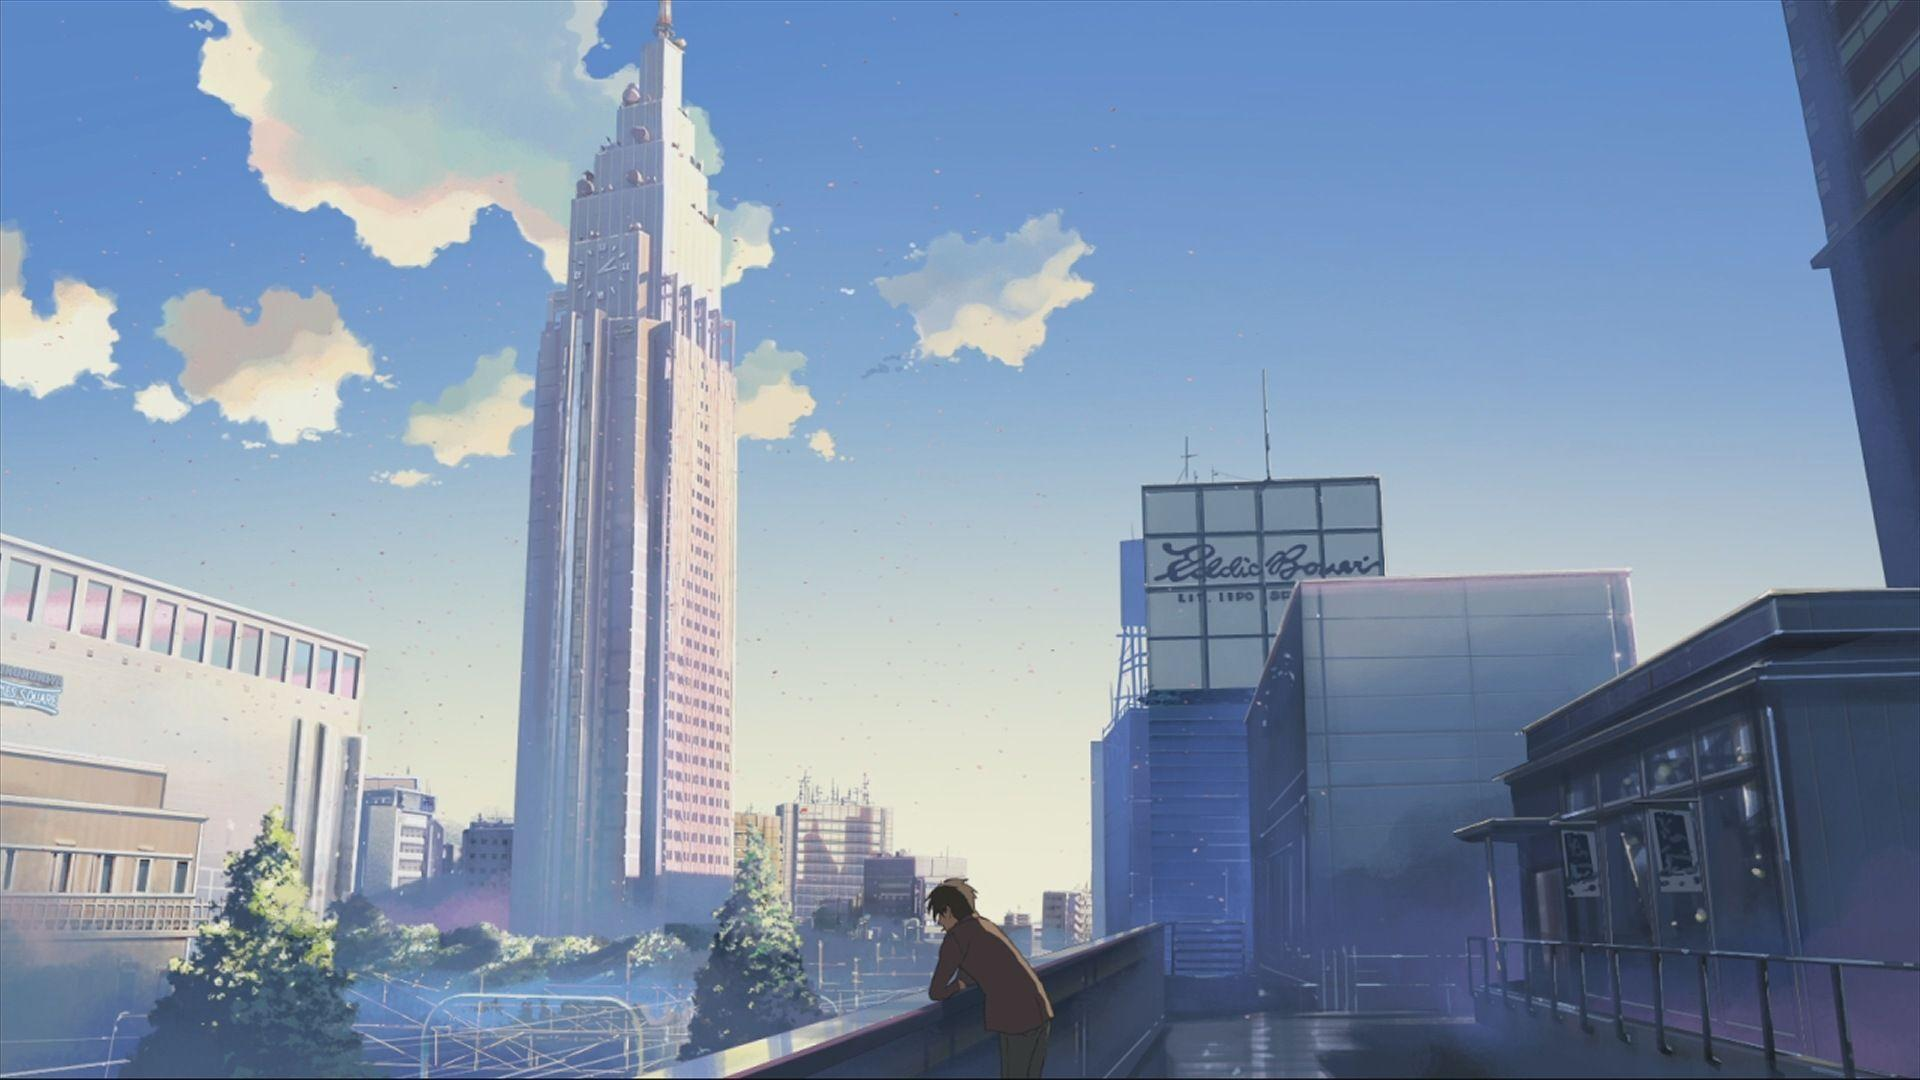 5 centimeters per second wallpapers Group